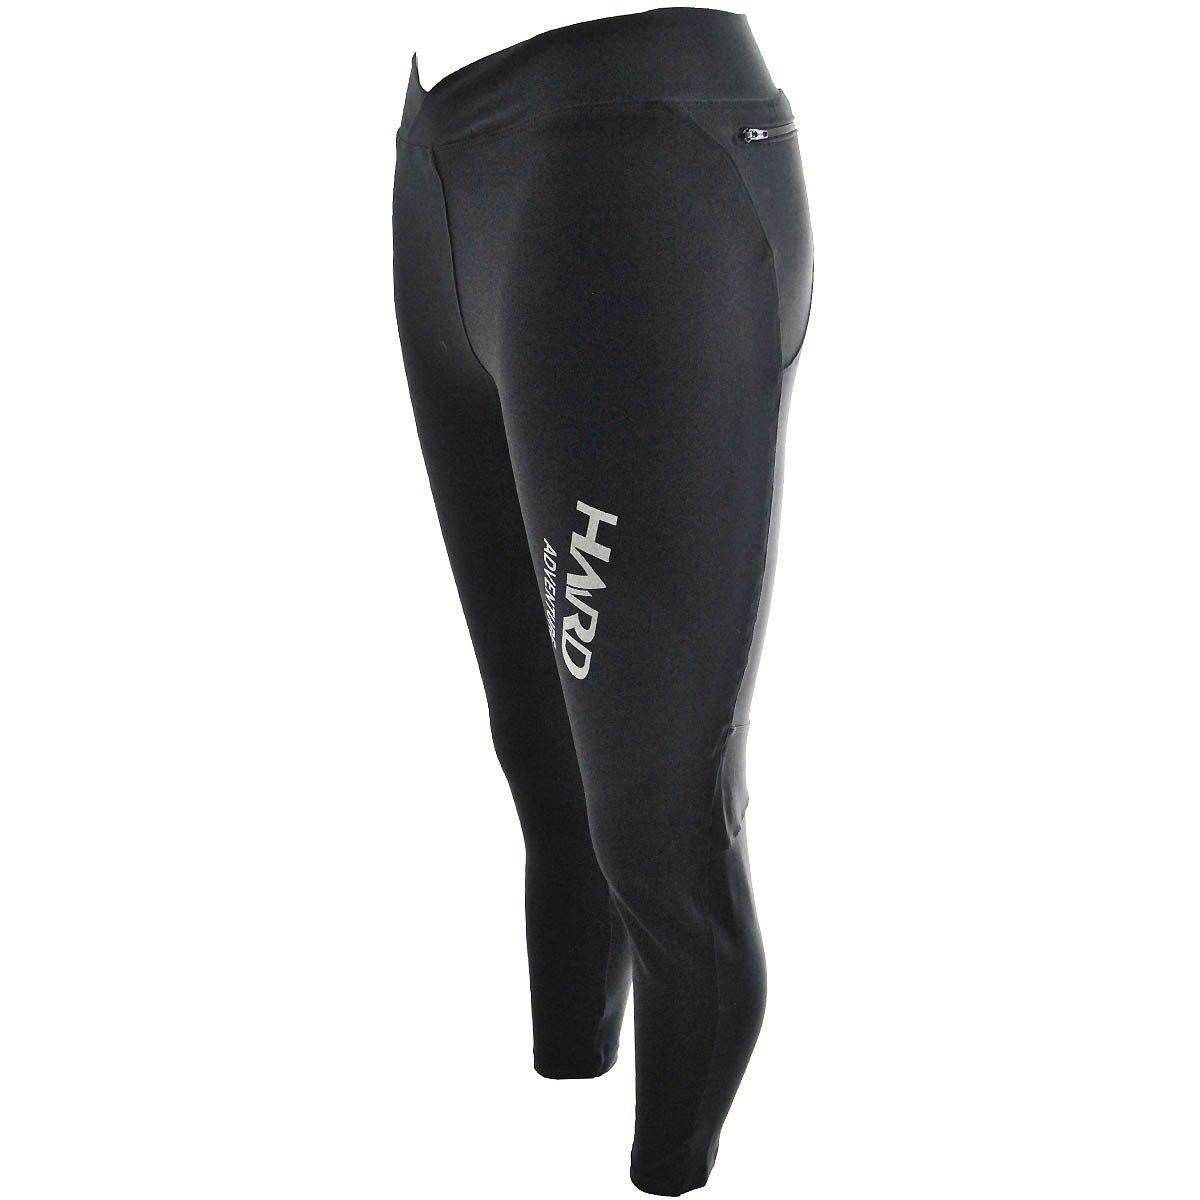 Bio Preto Bio Calca Hard Legging Hard Calca Fem Legging 6nRBUR